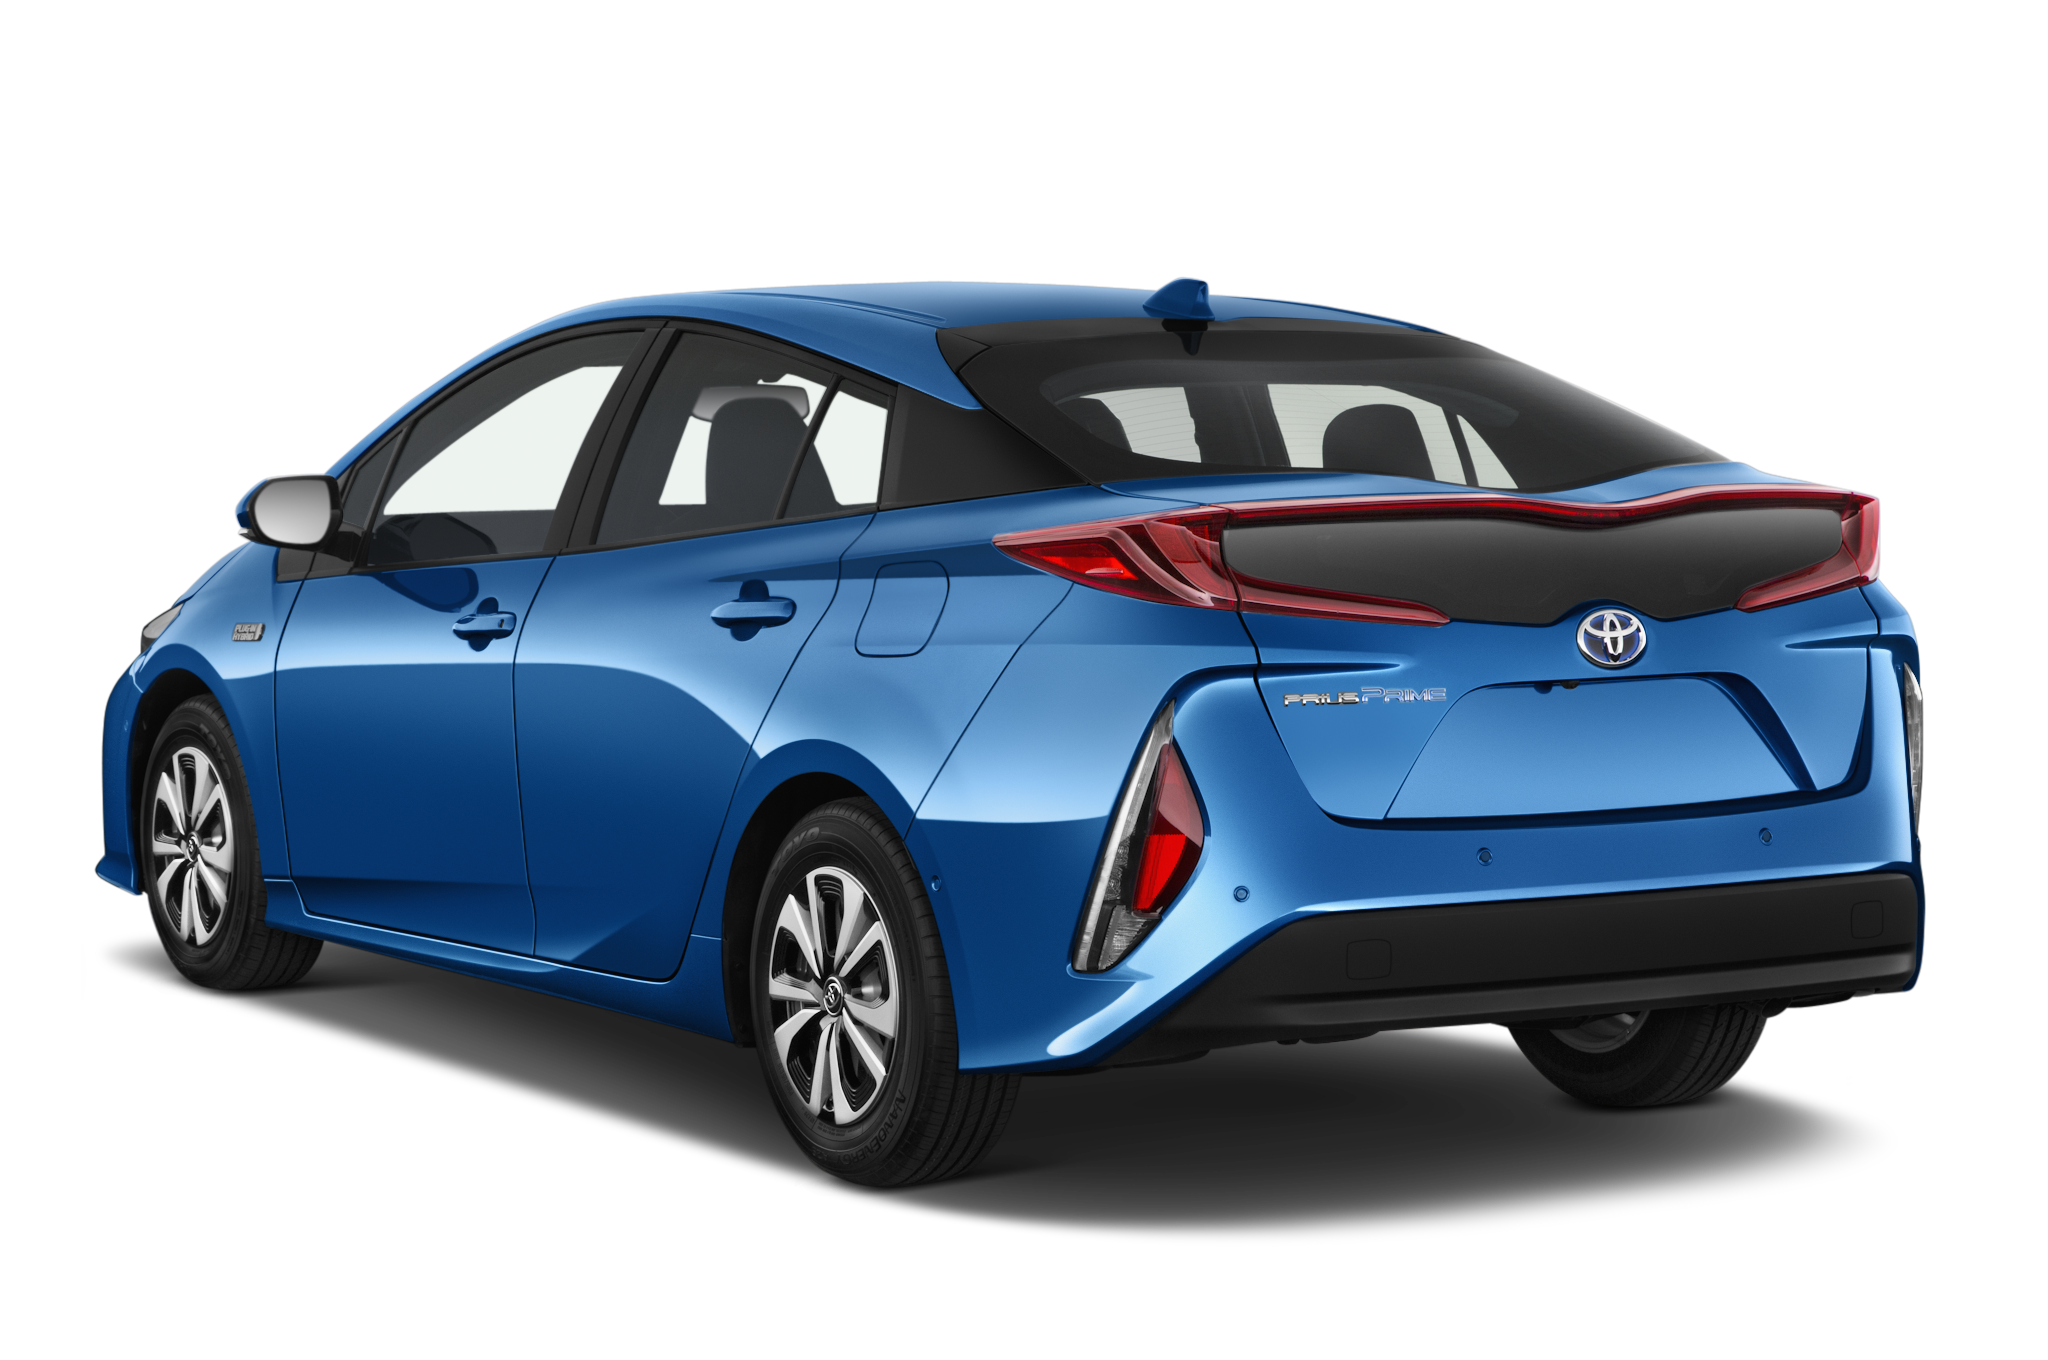 2017 Toyota Prius Hatchback Upcoming Toyota